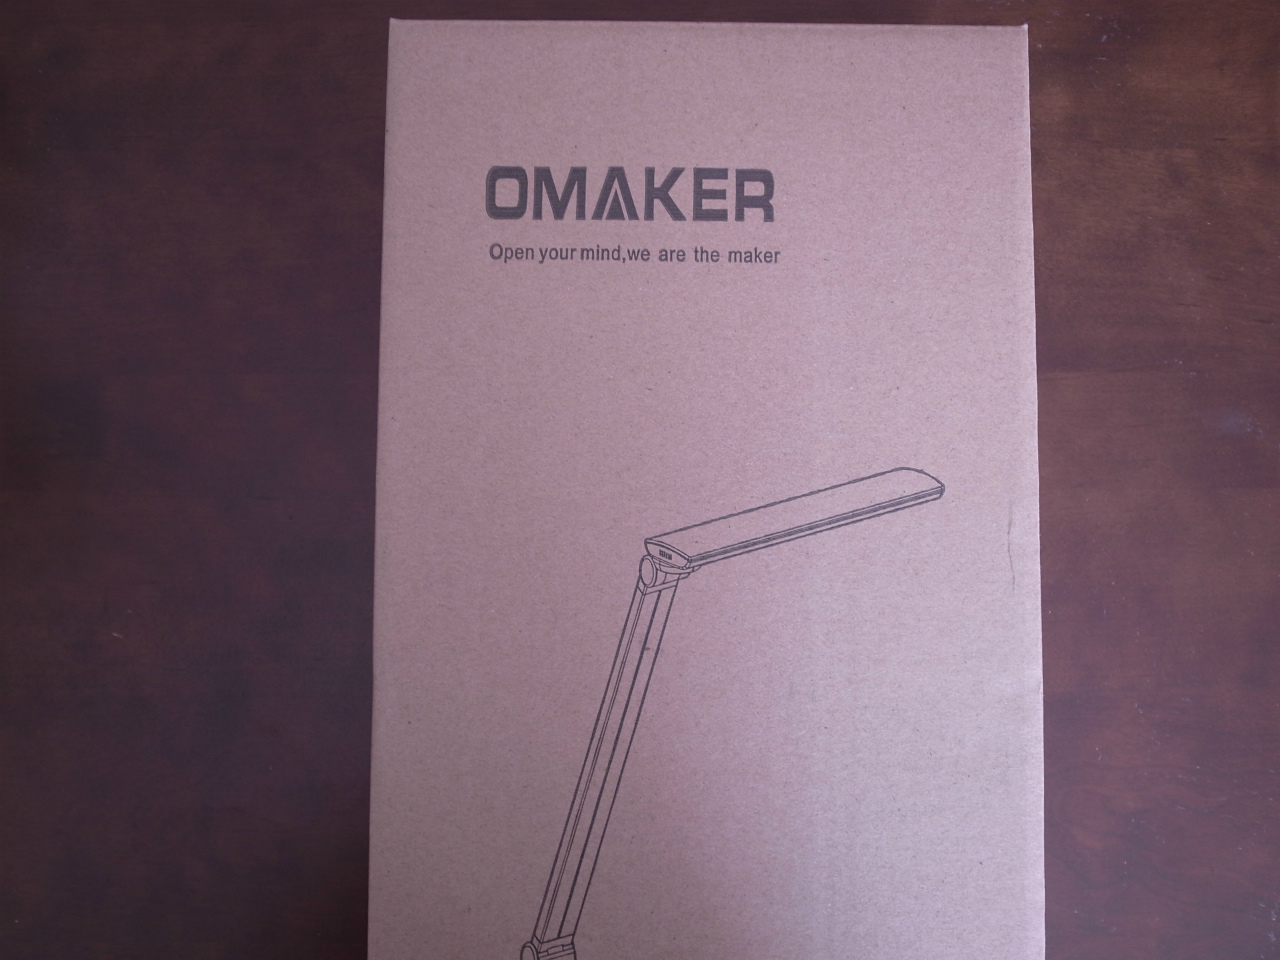 1201-201603_Omaker LED Desklight 01